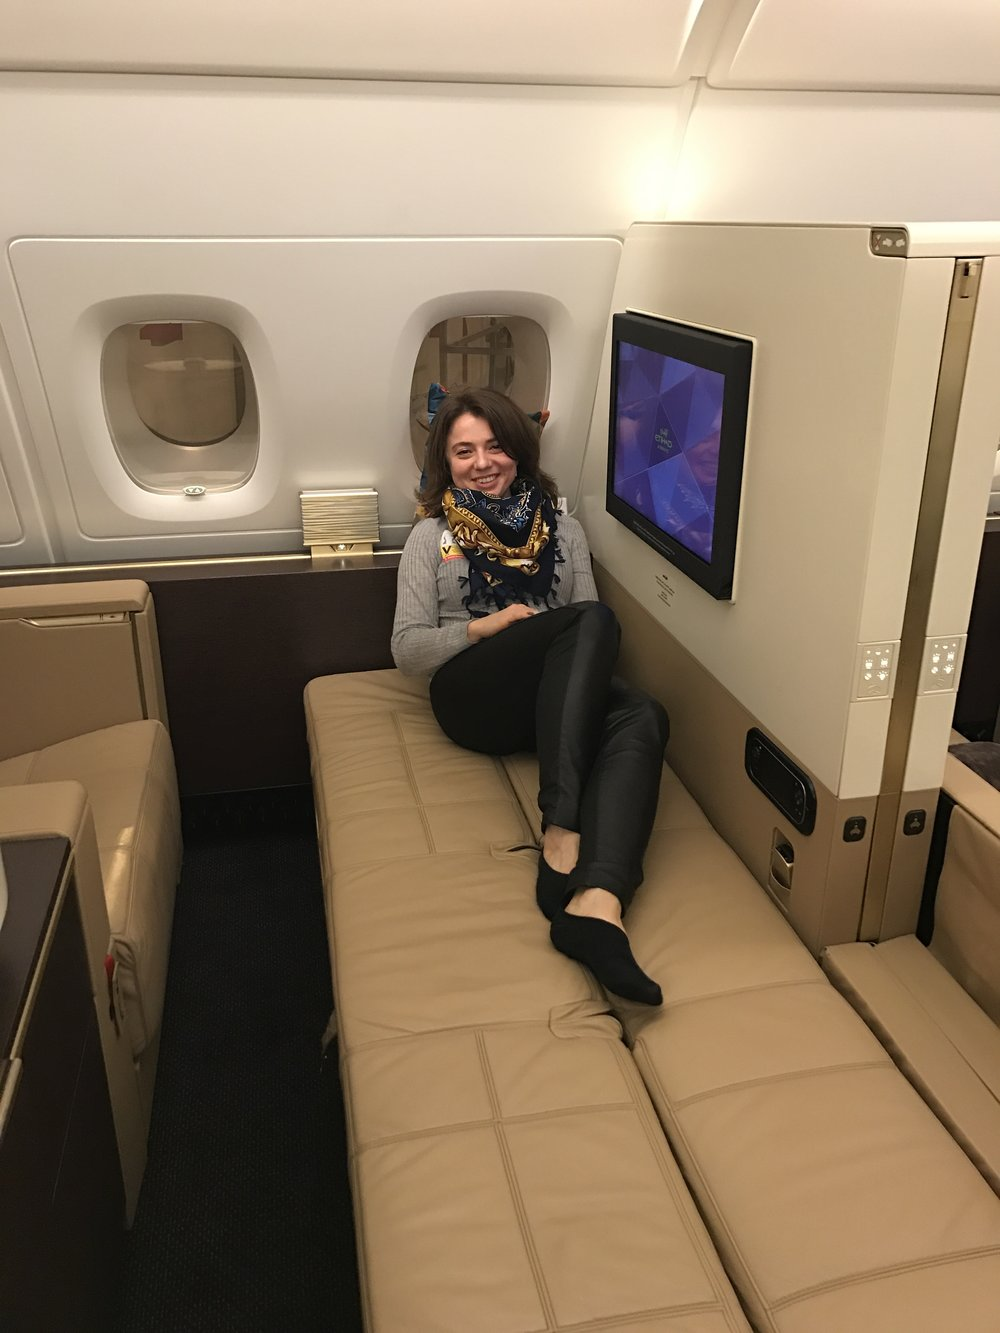 - As a First Class guest, I felt myself indulge with luxury and was a truly remarkable experience. Every element of your journey will be unforgettable with the greatest levels of comfort. Separate armchair and a 6-foot 9 inch bed will make you feel at home!  Inflight Chef is ready to personalise a menu just for you. You have a personal wardrobe to hang your suit. You can enjoy a full height shower and exclusive amenities. You will feel total privacy as you close your sliding doors to enjoy the most personal of spaces. Travelling with a companion? You can also open the divider to join suites.